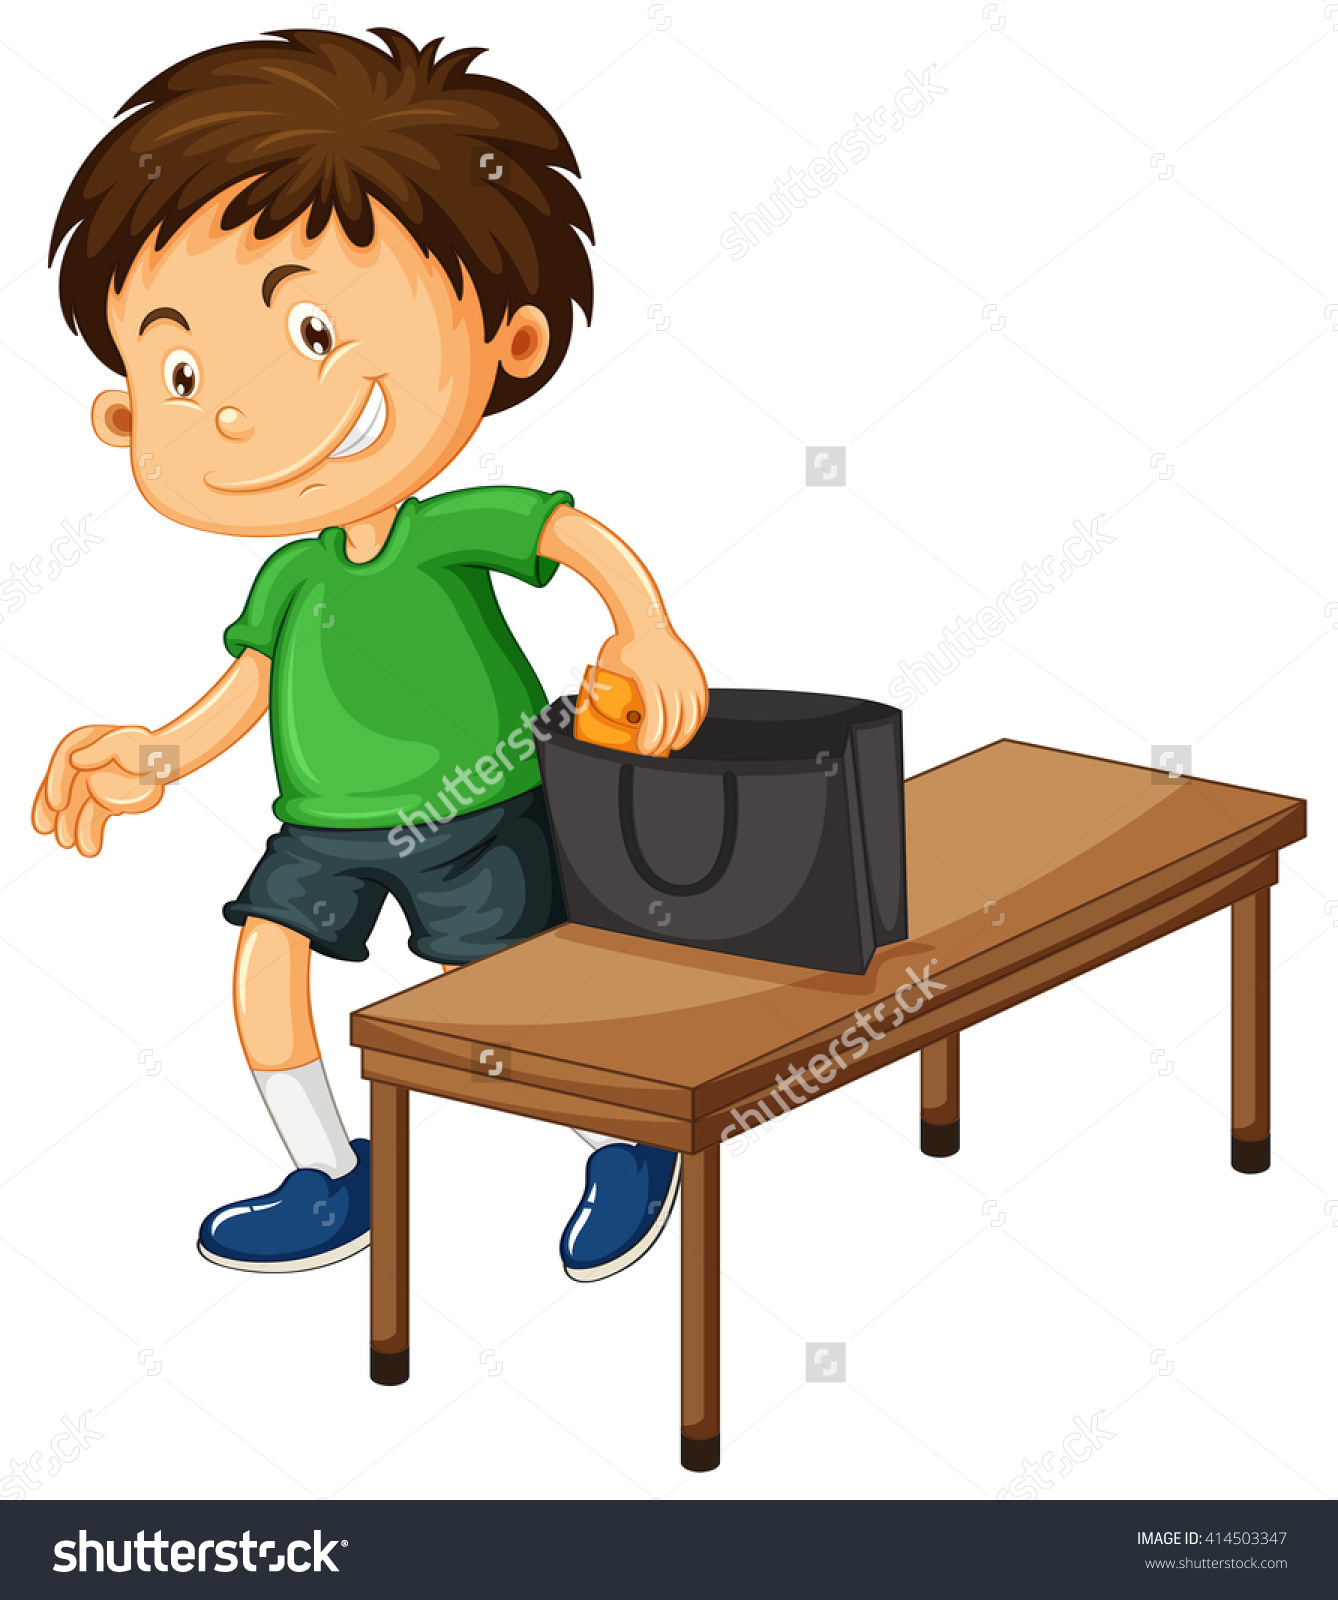 Boy Stealing Things Purse Illustration Stock Vector 414503347.